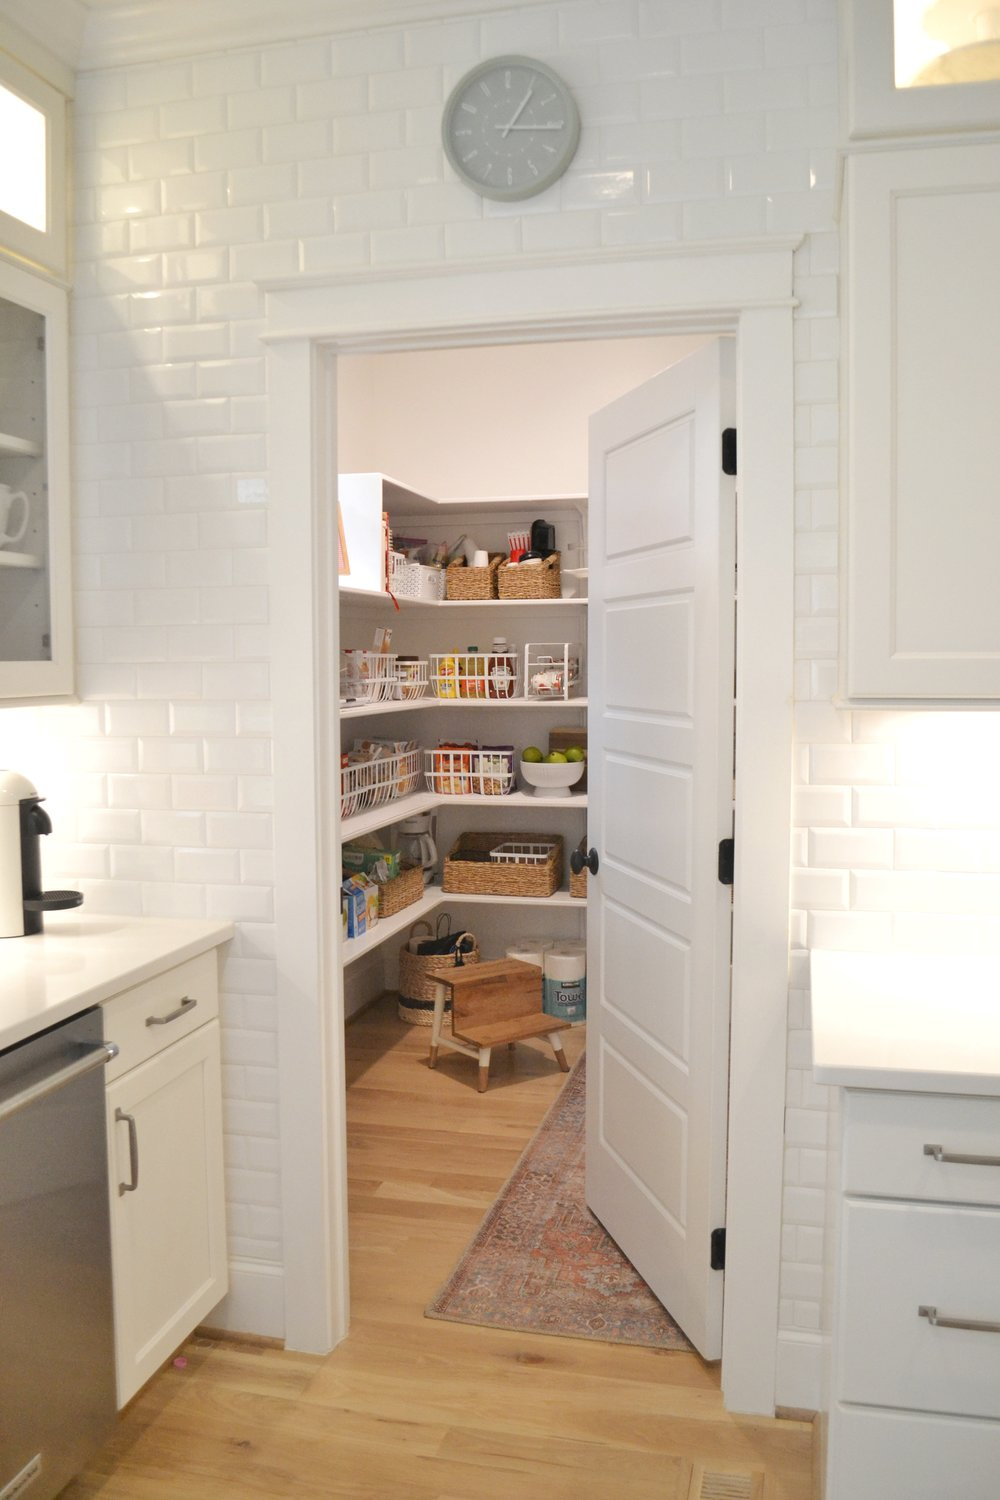 Our Pantry - Organized on a Budget